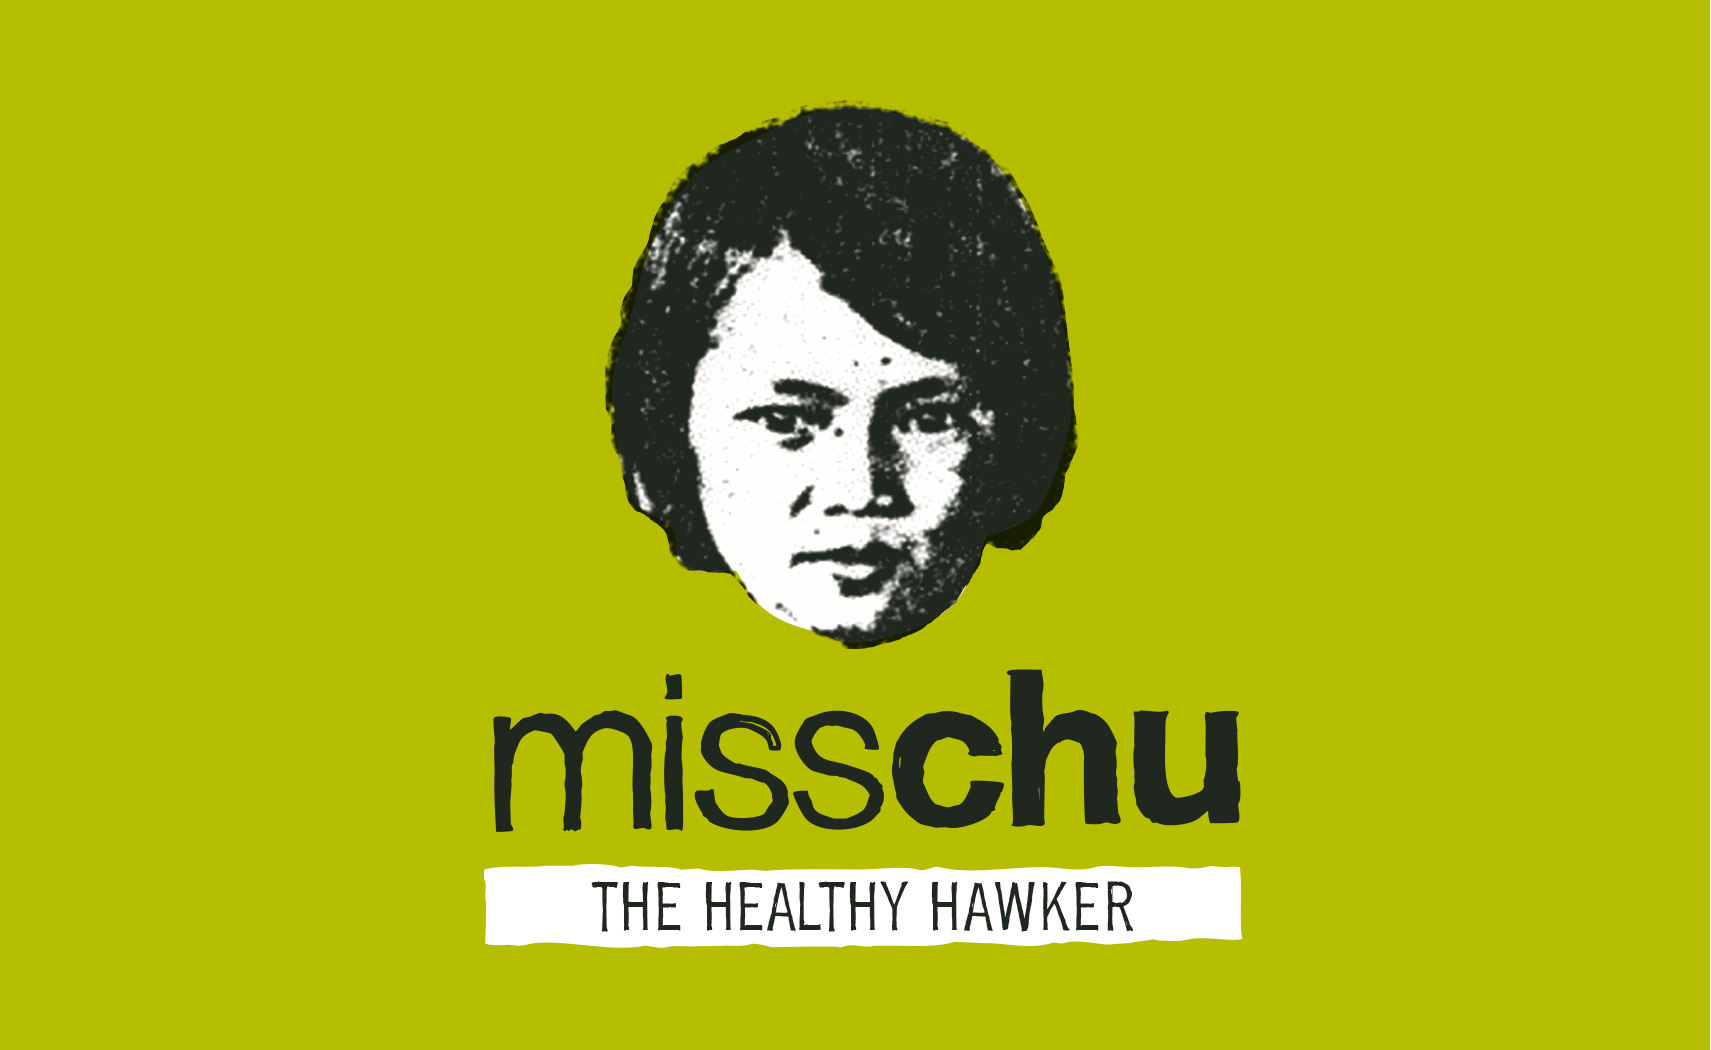 MISSCHU - The Healthy Hawker, Geelong